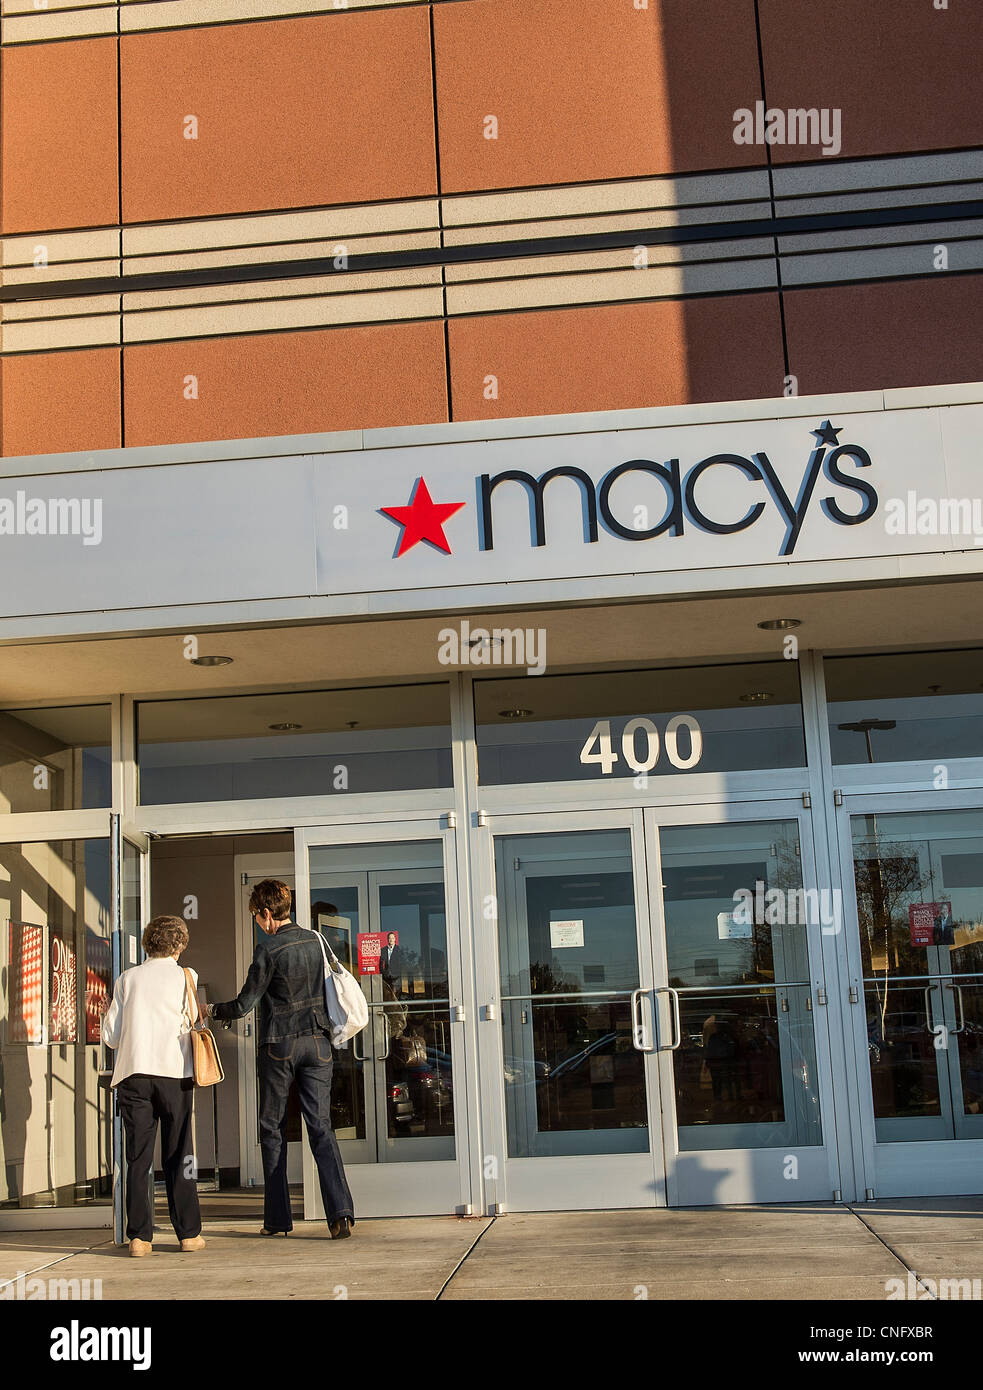 Macy's Deparment store. - Stock Image